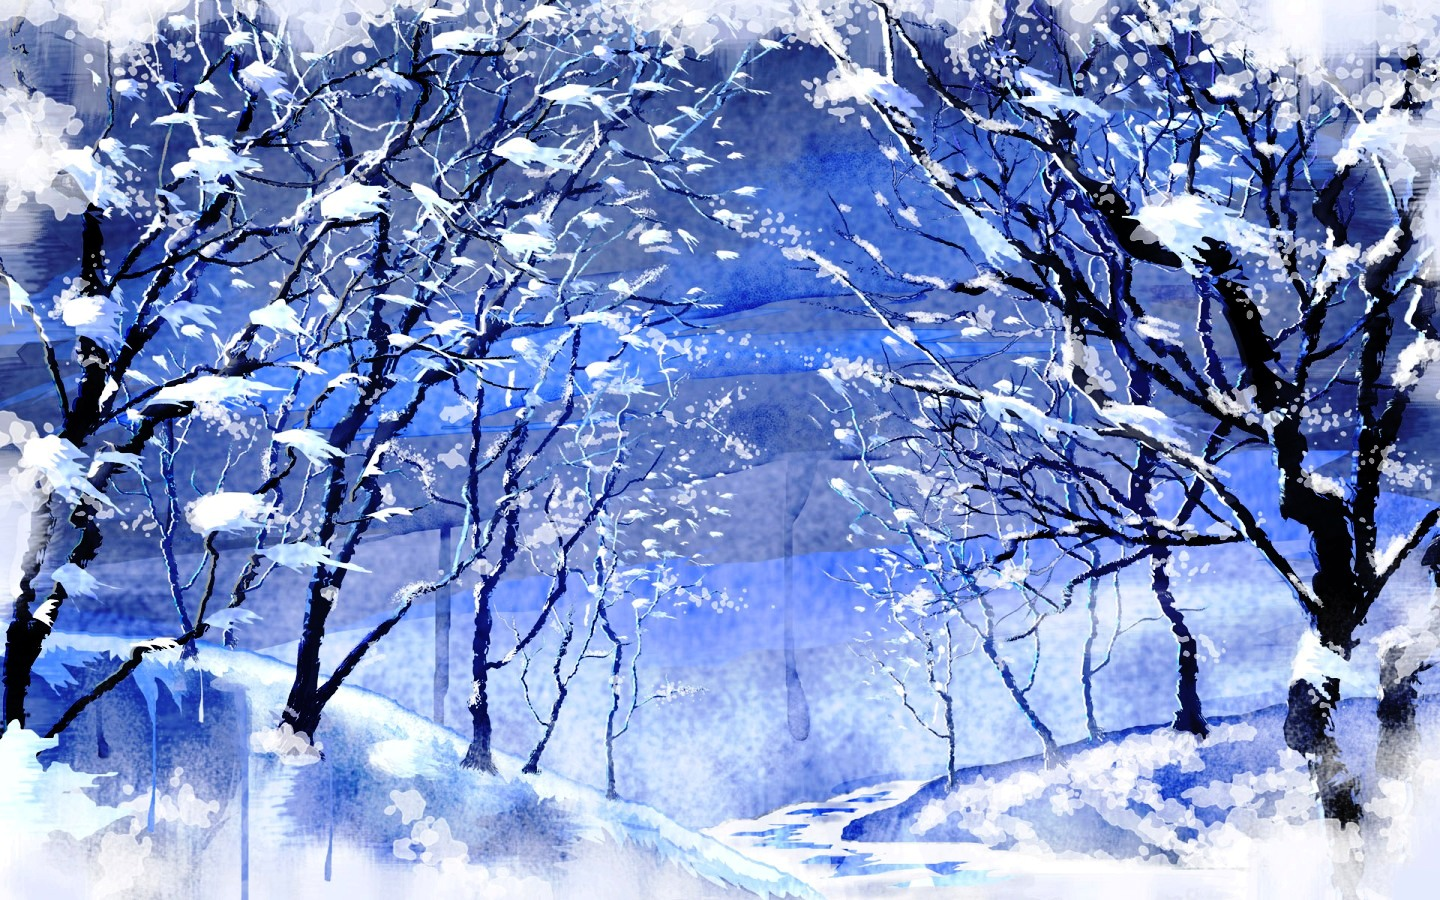 Winter Blizzard wallpaper   ForWallpapercom 1440x900